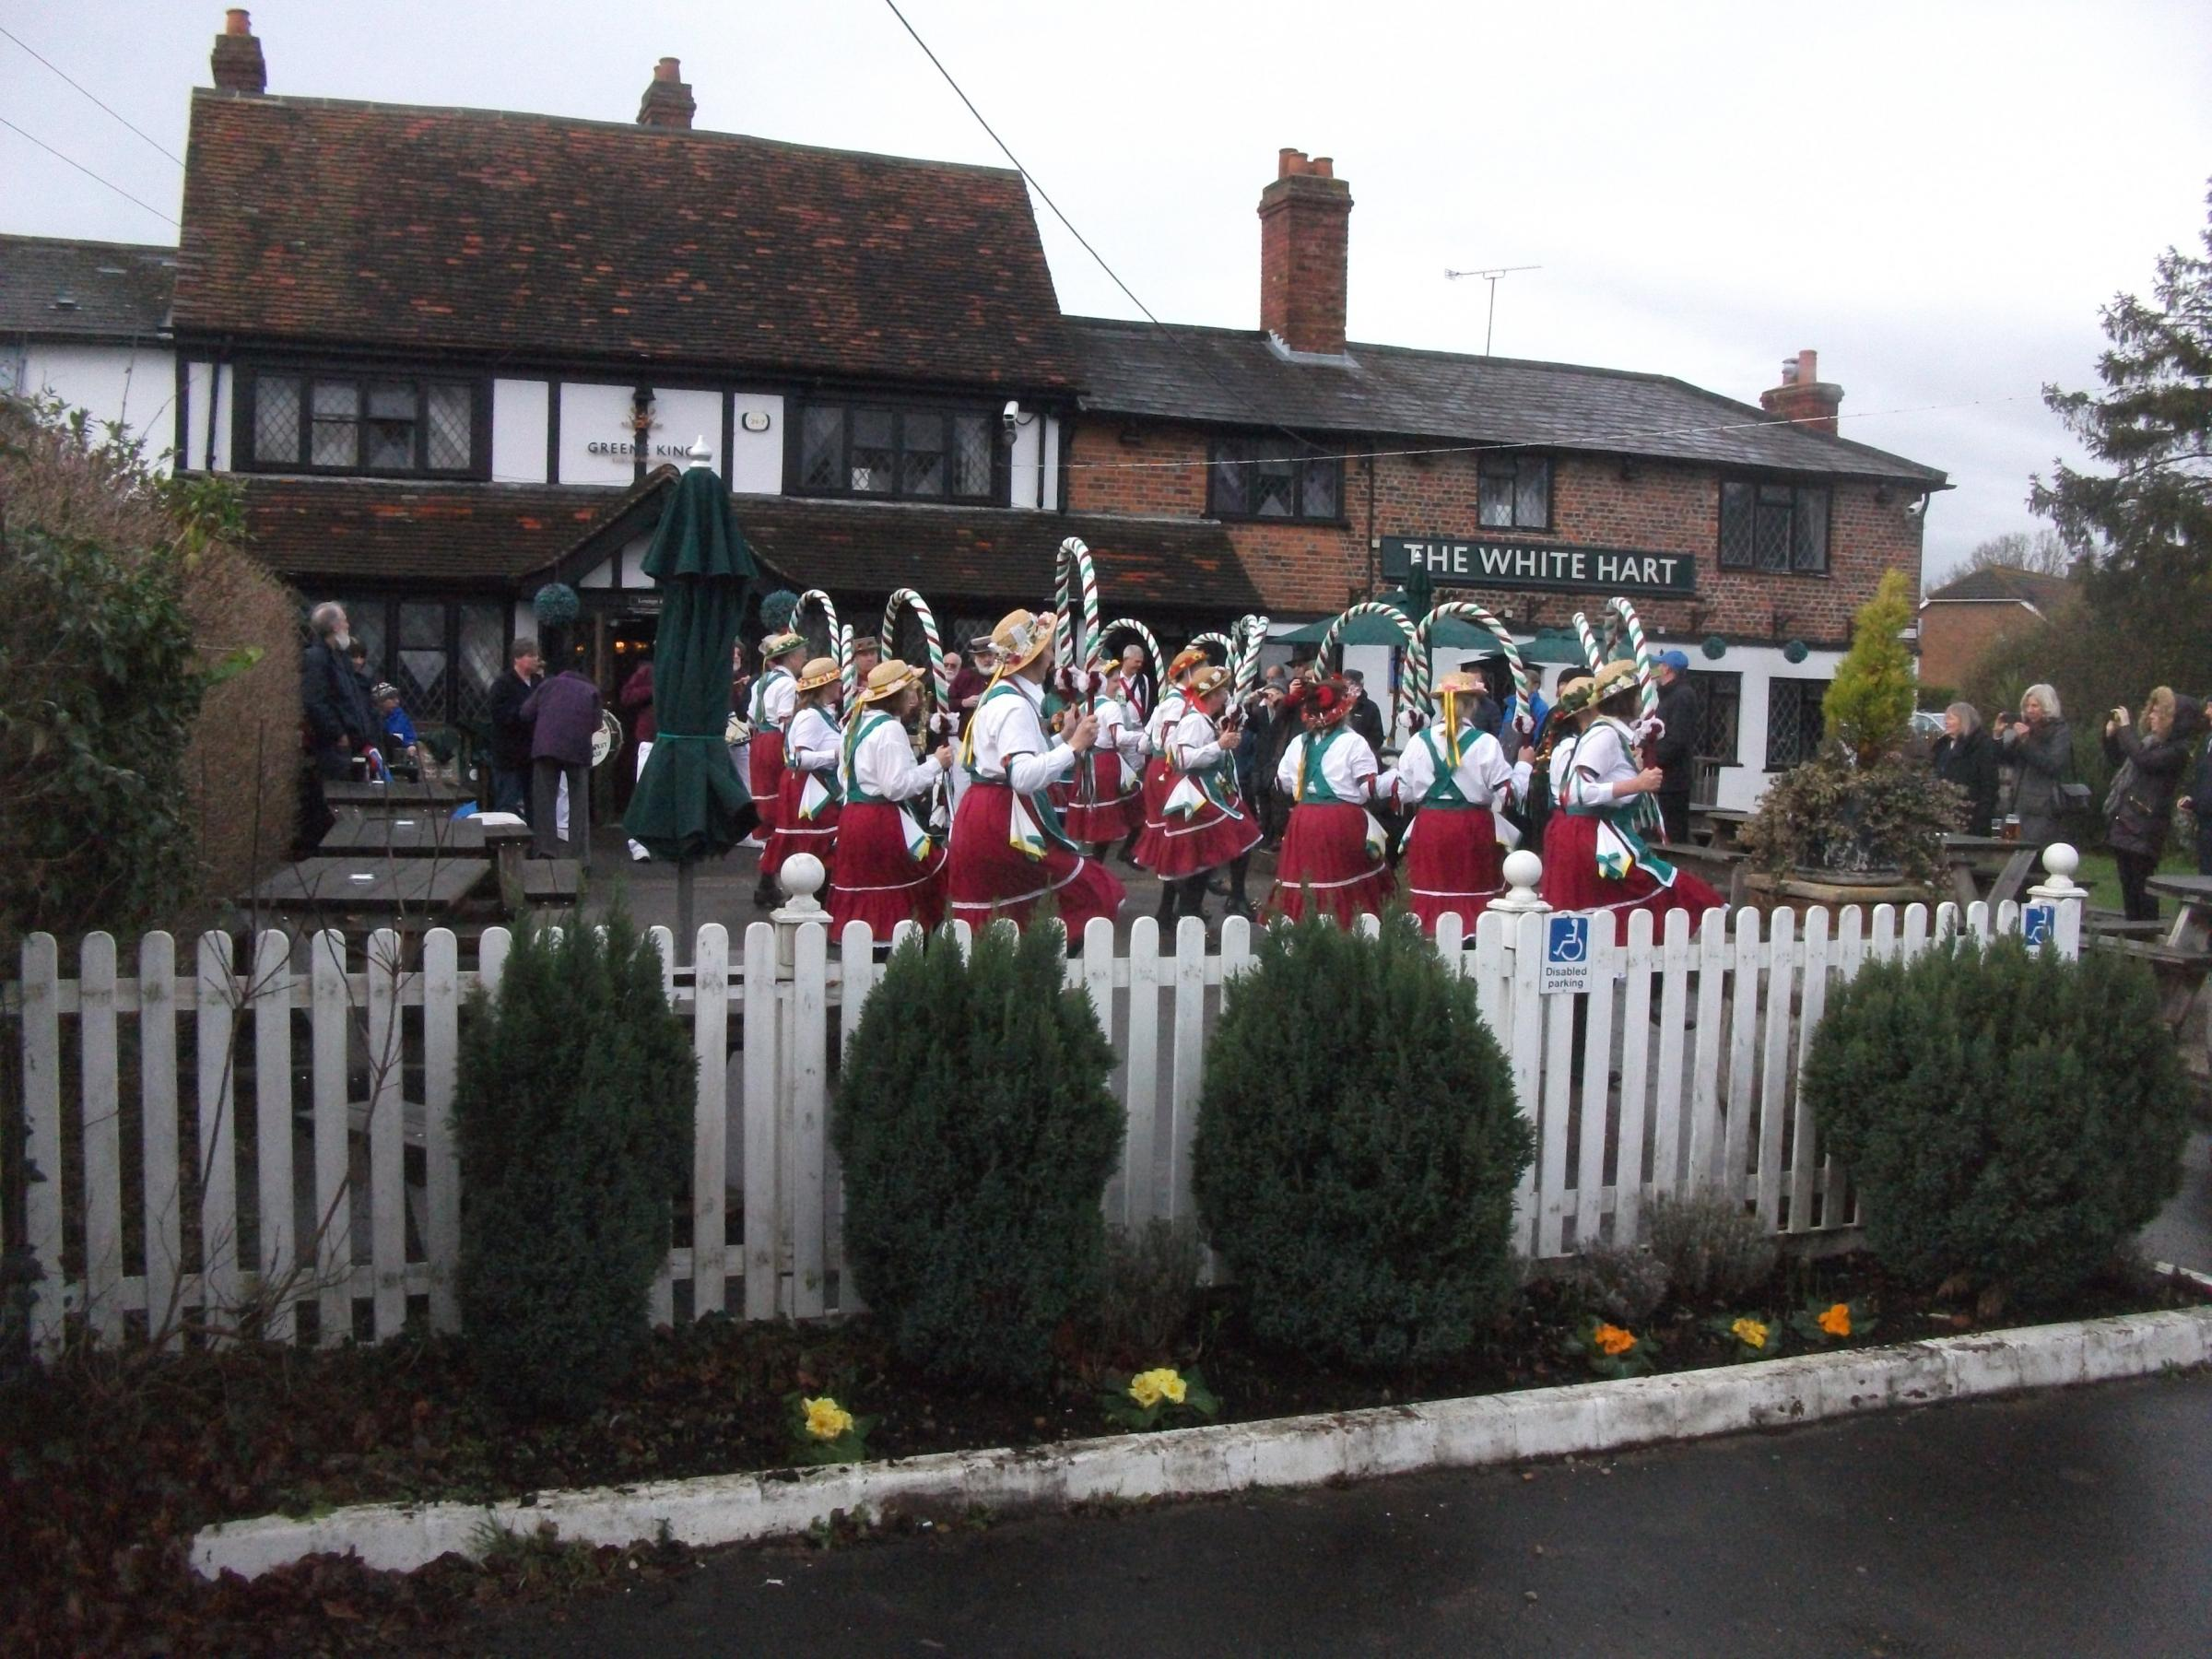 Morris dancing to welcome the new year